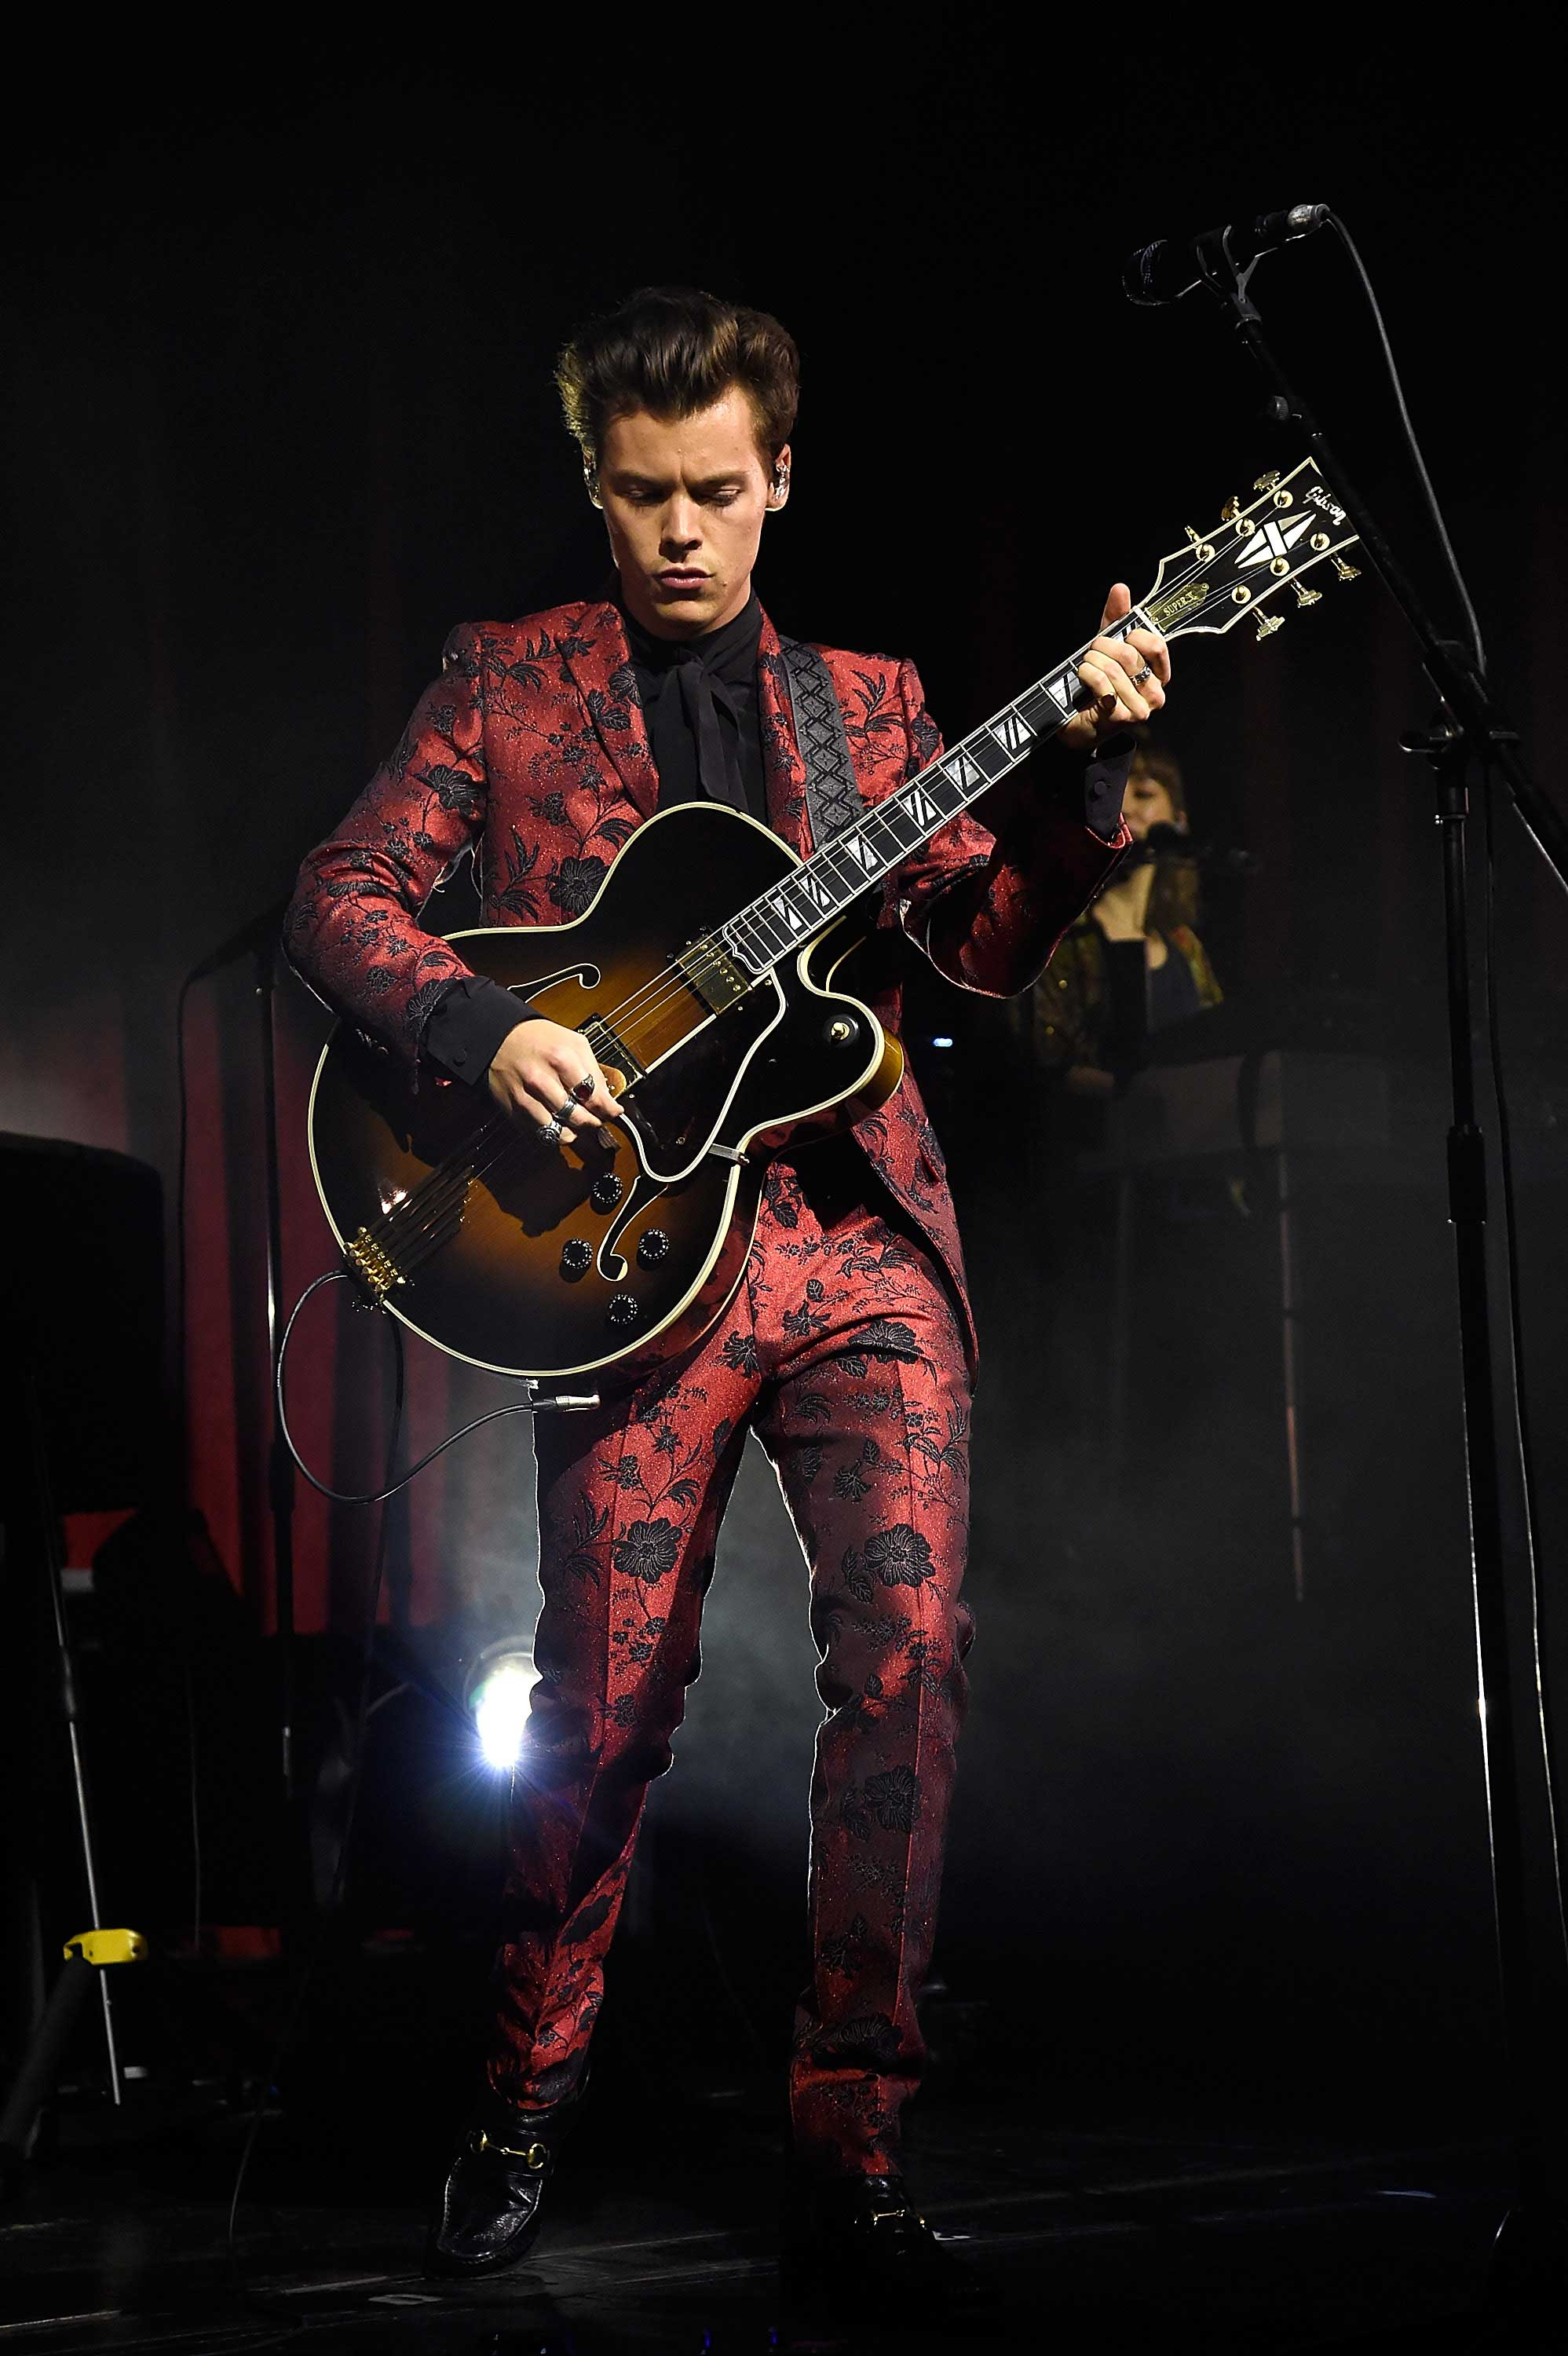 Harry-Styles-Spotify-Singles-Session-at-Radio-City-Music-Hall-in-New-York-City-September-28-2017-2